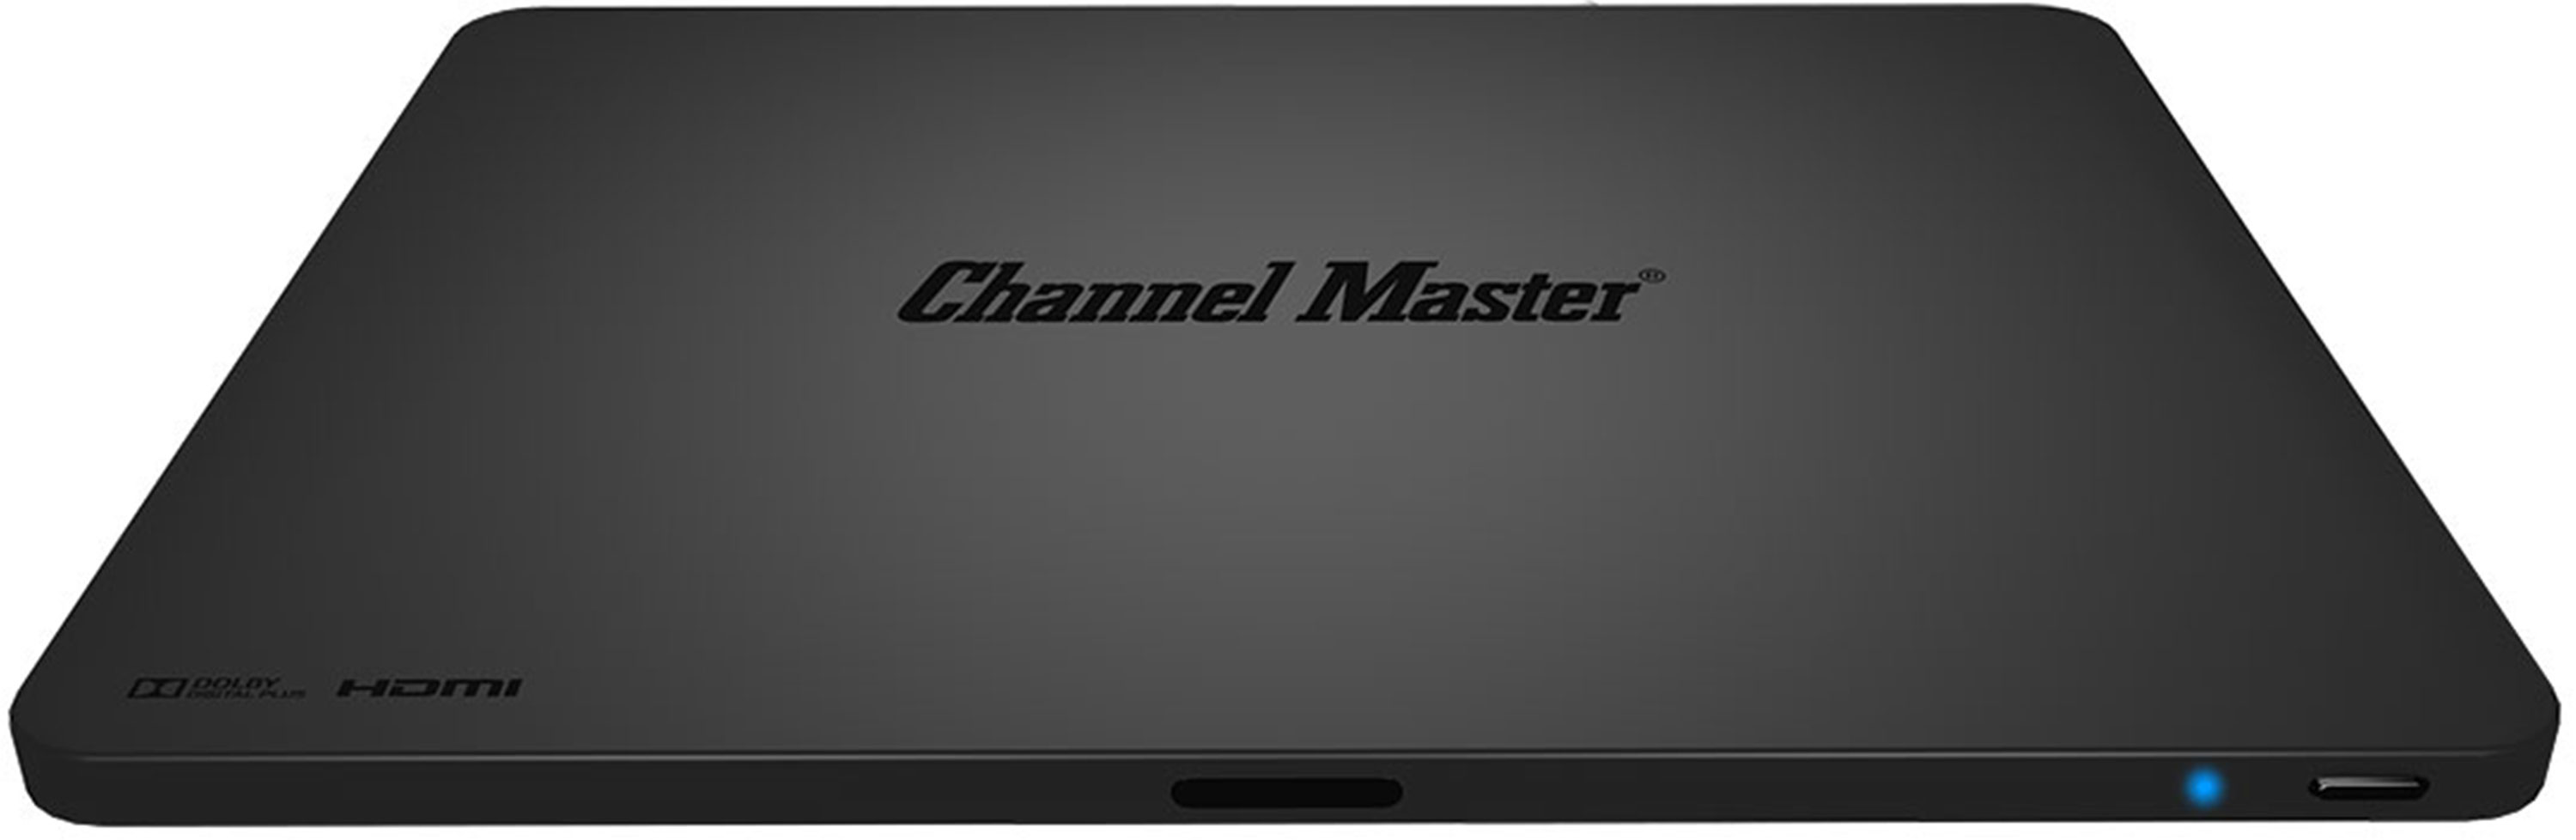 The Sleek DVR+ by Channel Master